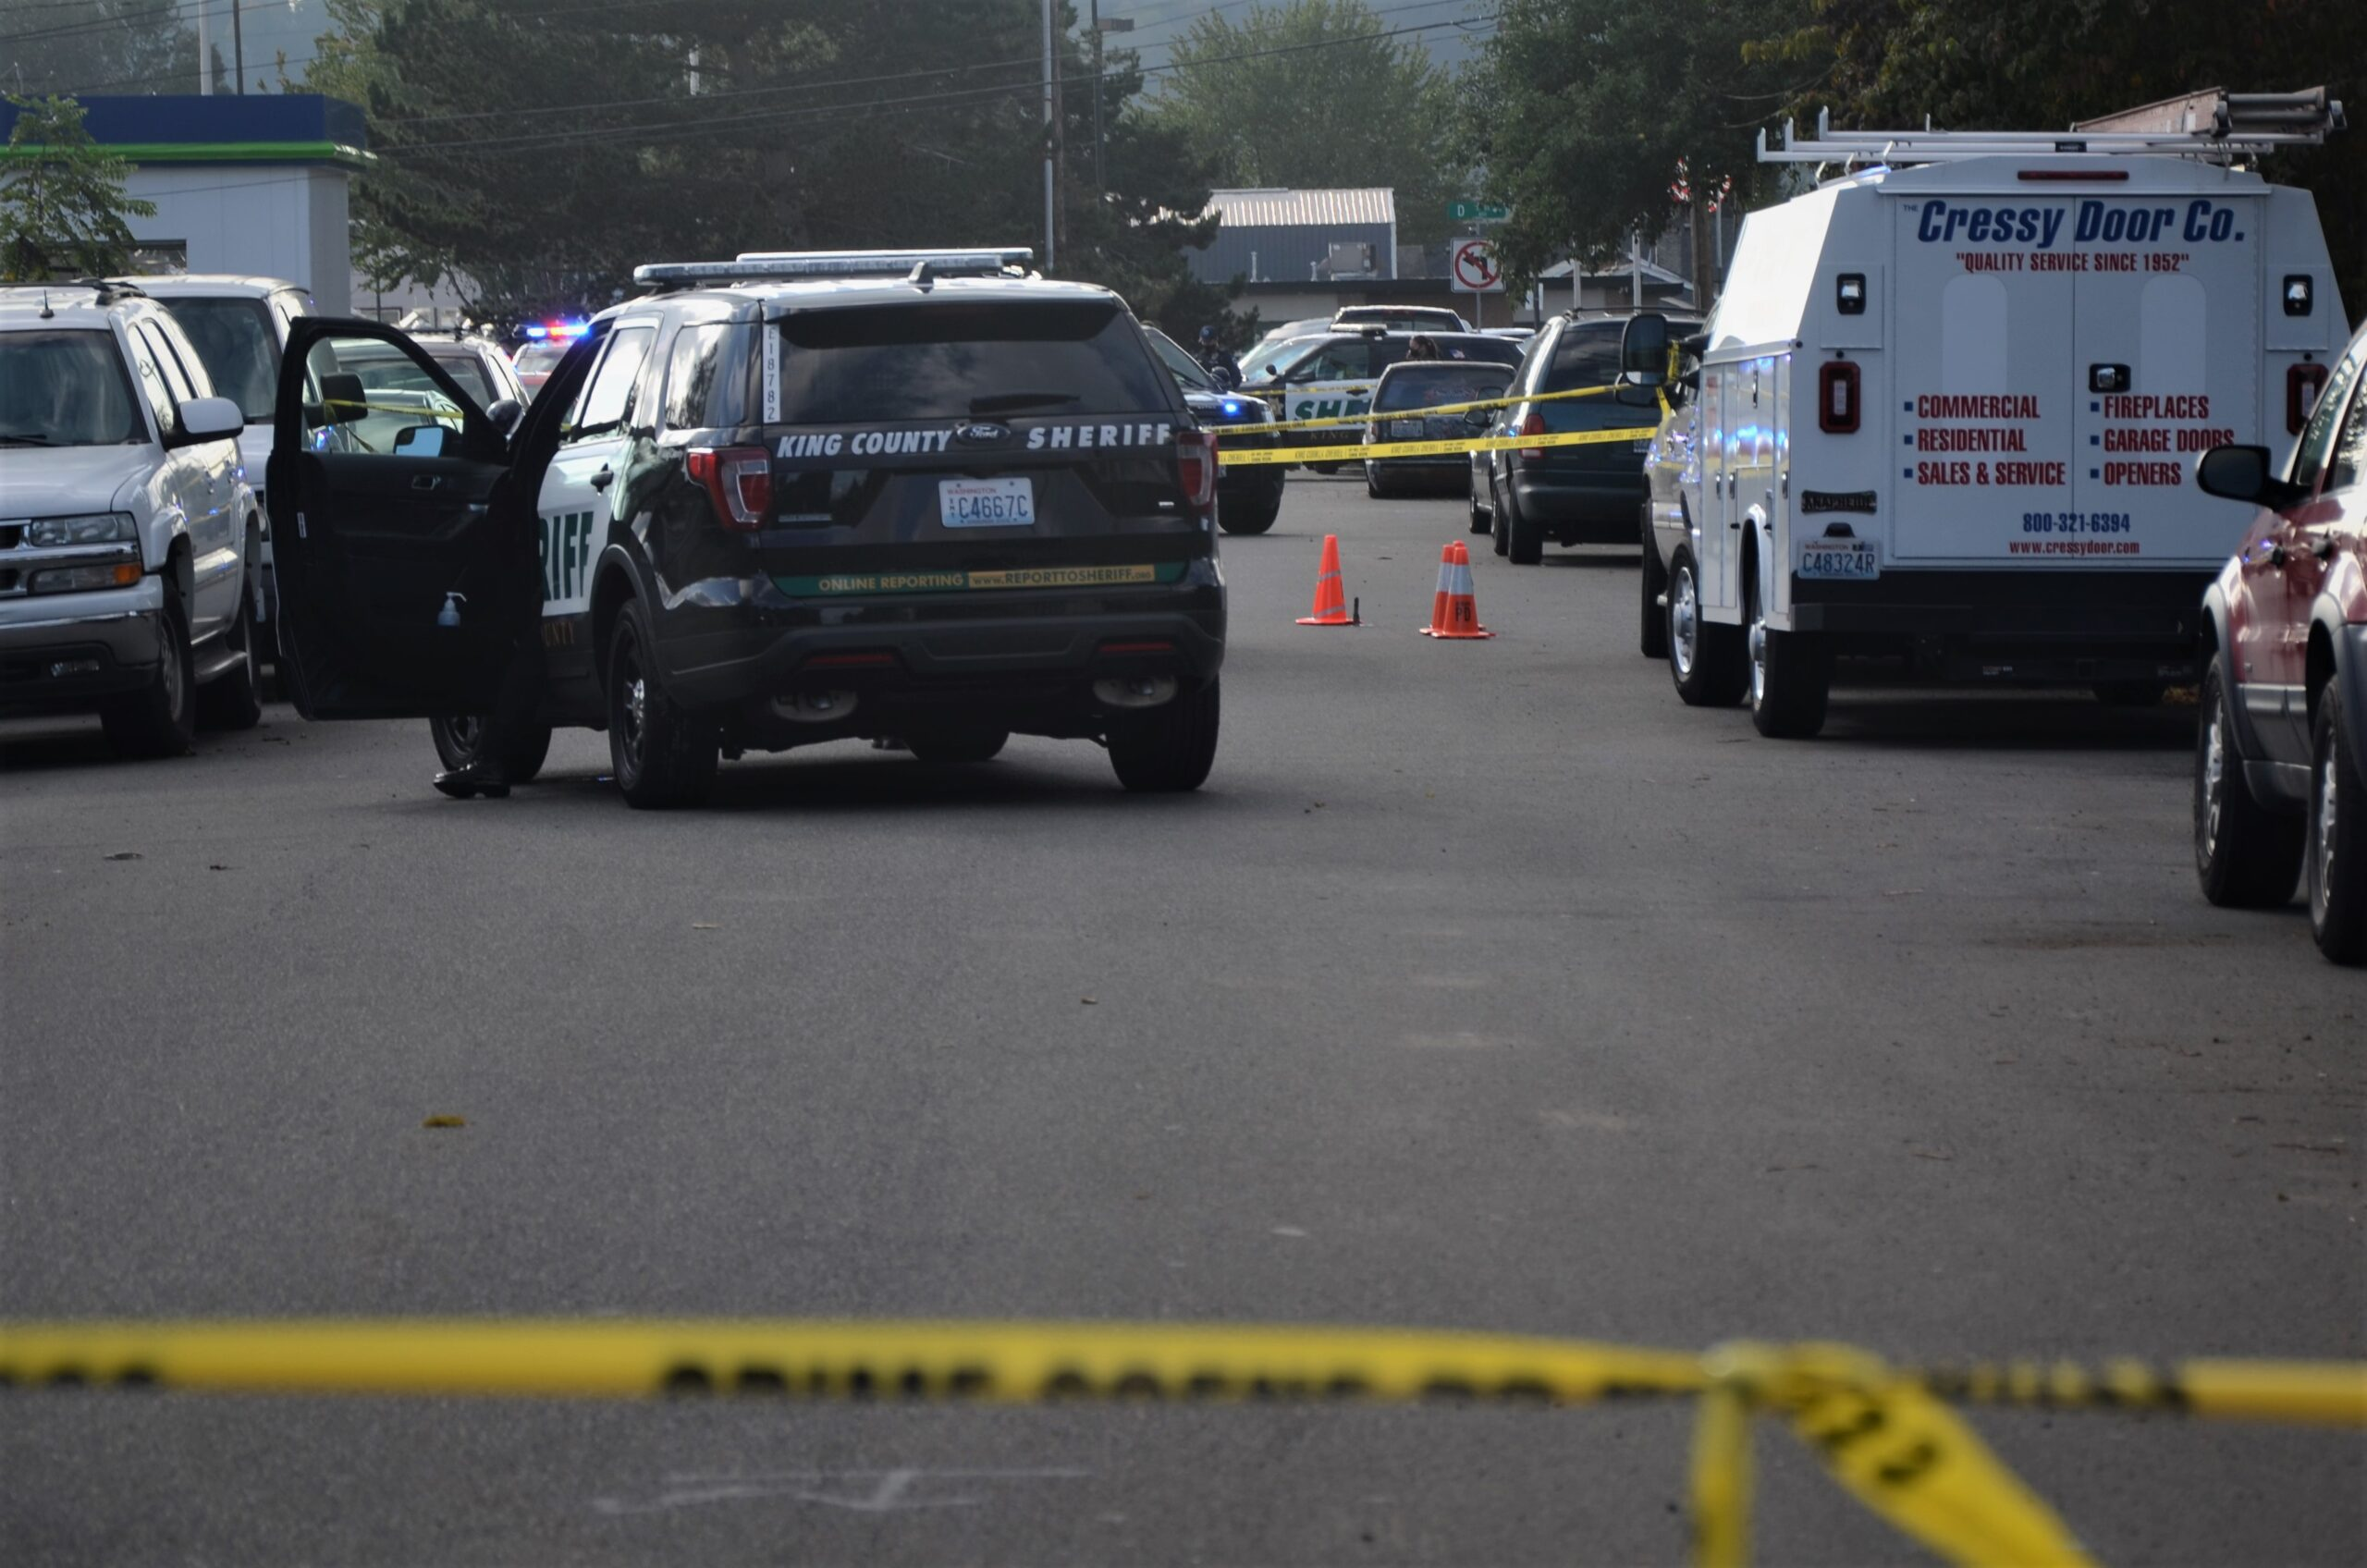 king county sheriff's office, kcso, king county sheriff, king county sheriff deputy officer involved shooting, auburn wa officer involved shooting, king county deputy shooting, fatal shooting auburn wa, city of auburn shooting, 8th st se shooting, auburn police shooting,